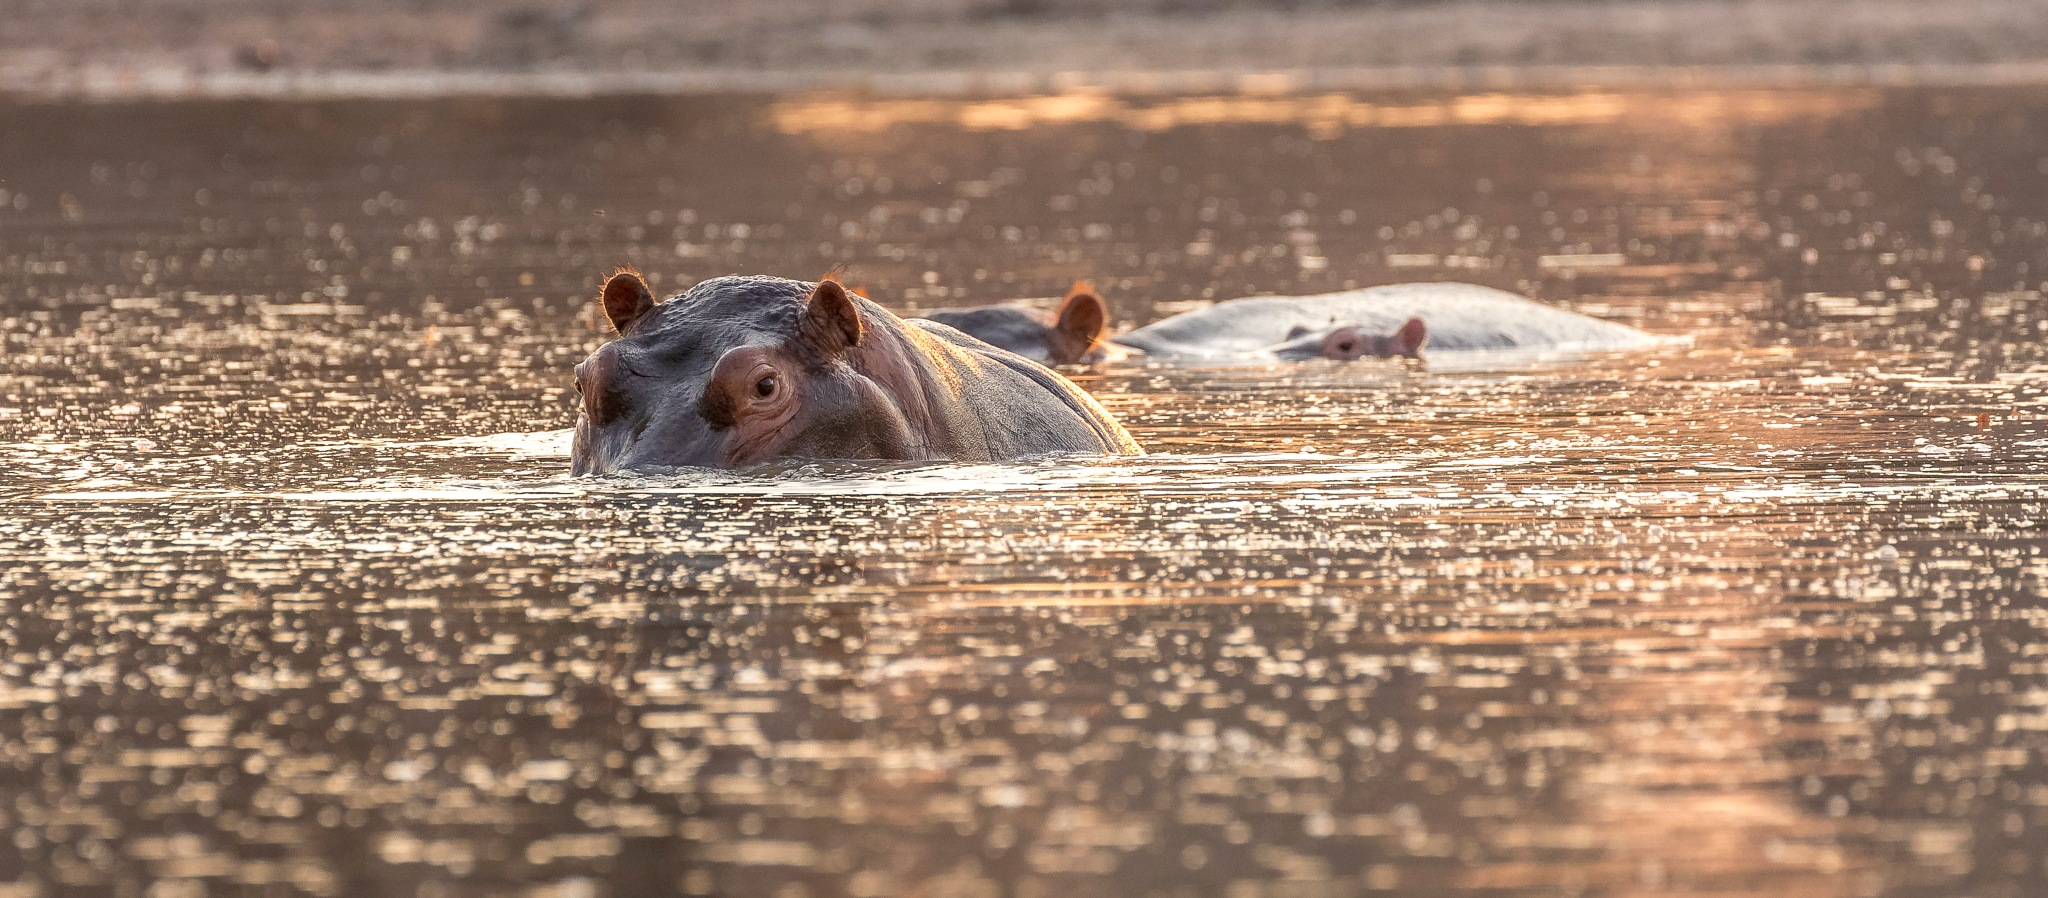 Photo in Animal #zimbabwe #mana pools national park #safari #wildlife #nature #animal #hippo #sunset